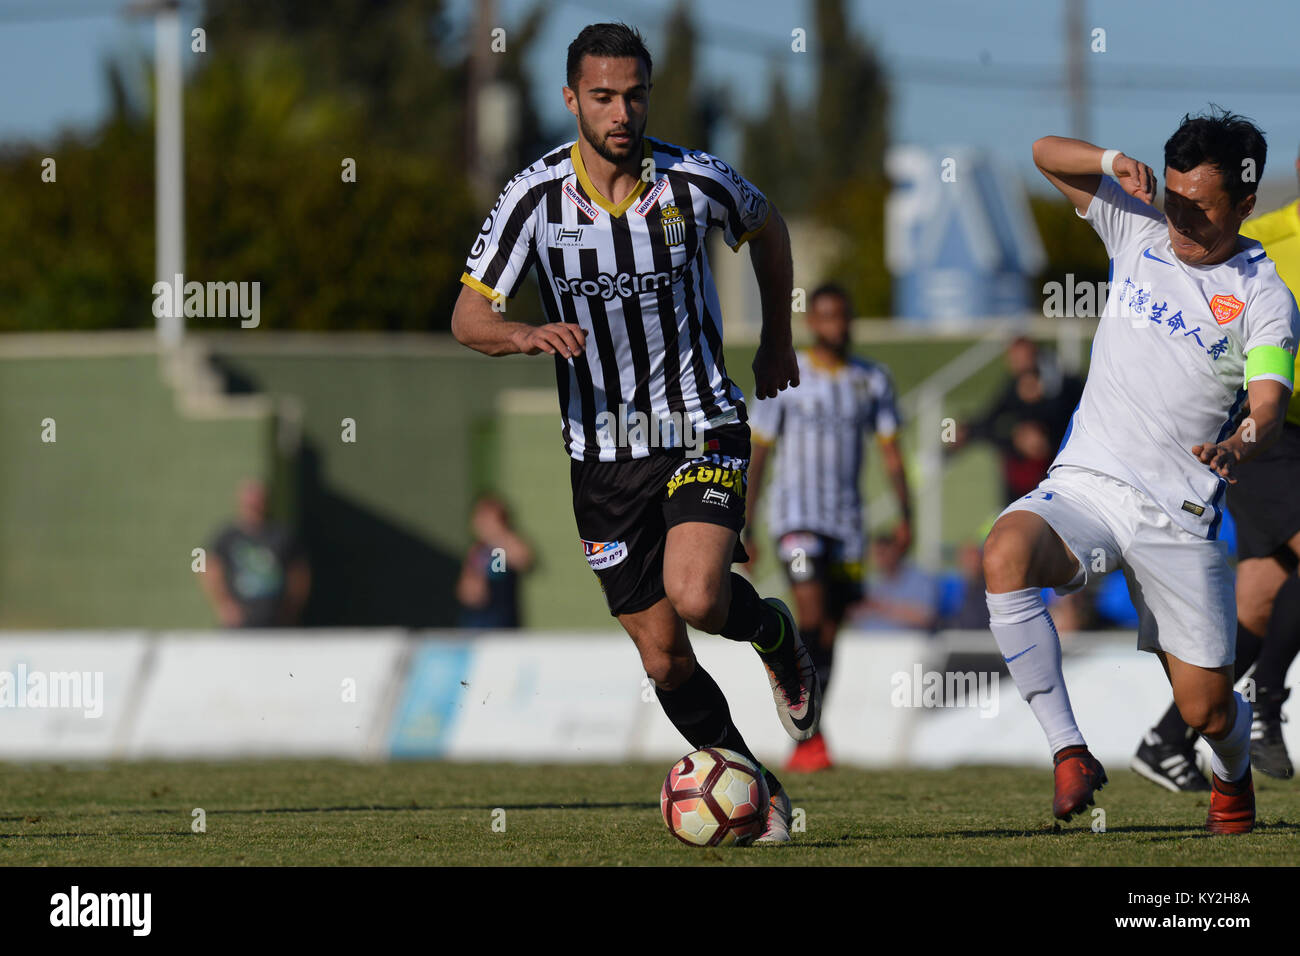 Julien Celestine during the friendly match between team Royal Charleroi SC vs.Yanbian Funde FC at Pinatar Arena, - Stock Image